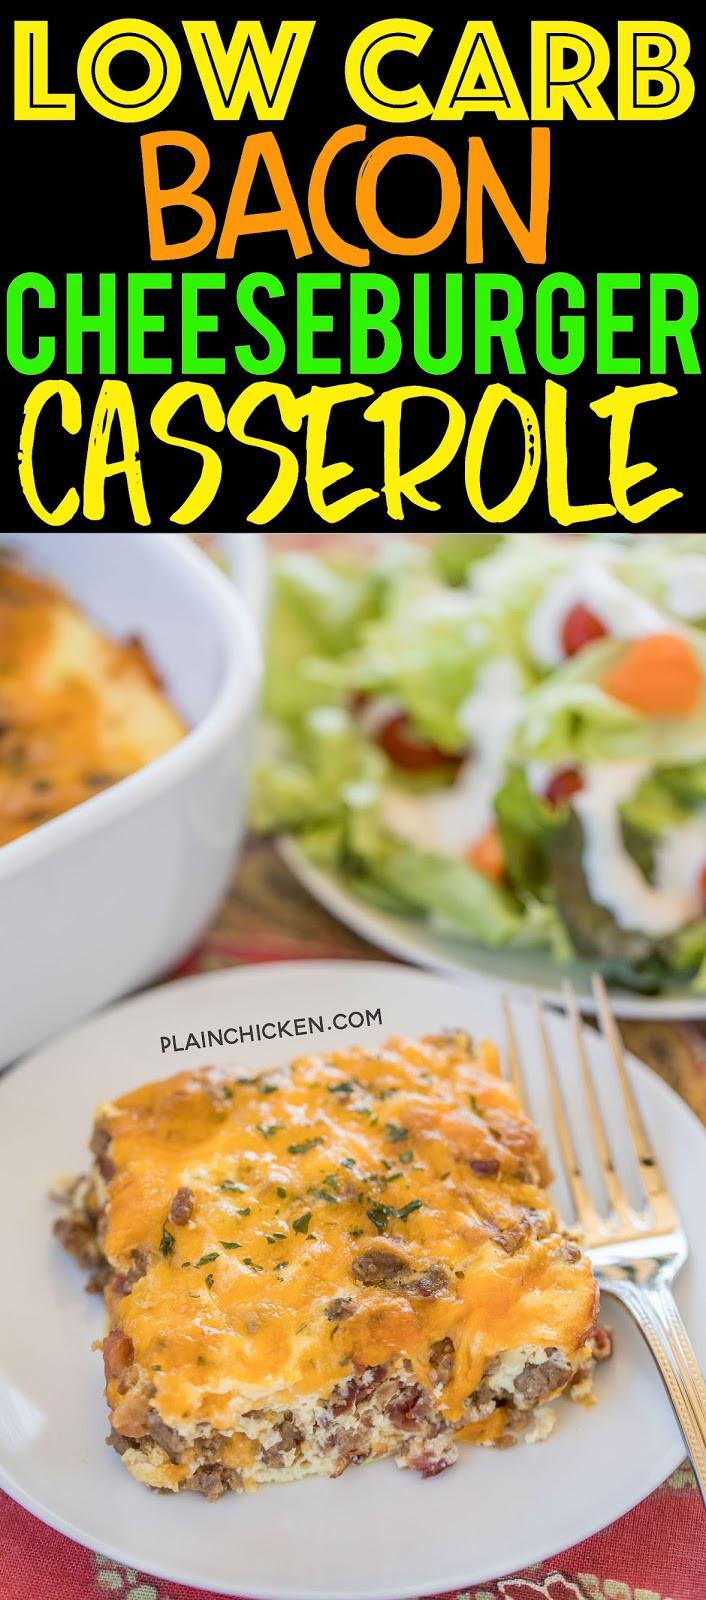 Low Carb Chicken Bacon Ranch Casserole  Low Carb Bacon Cheeseburger Casserole